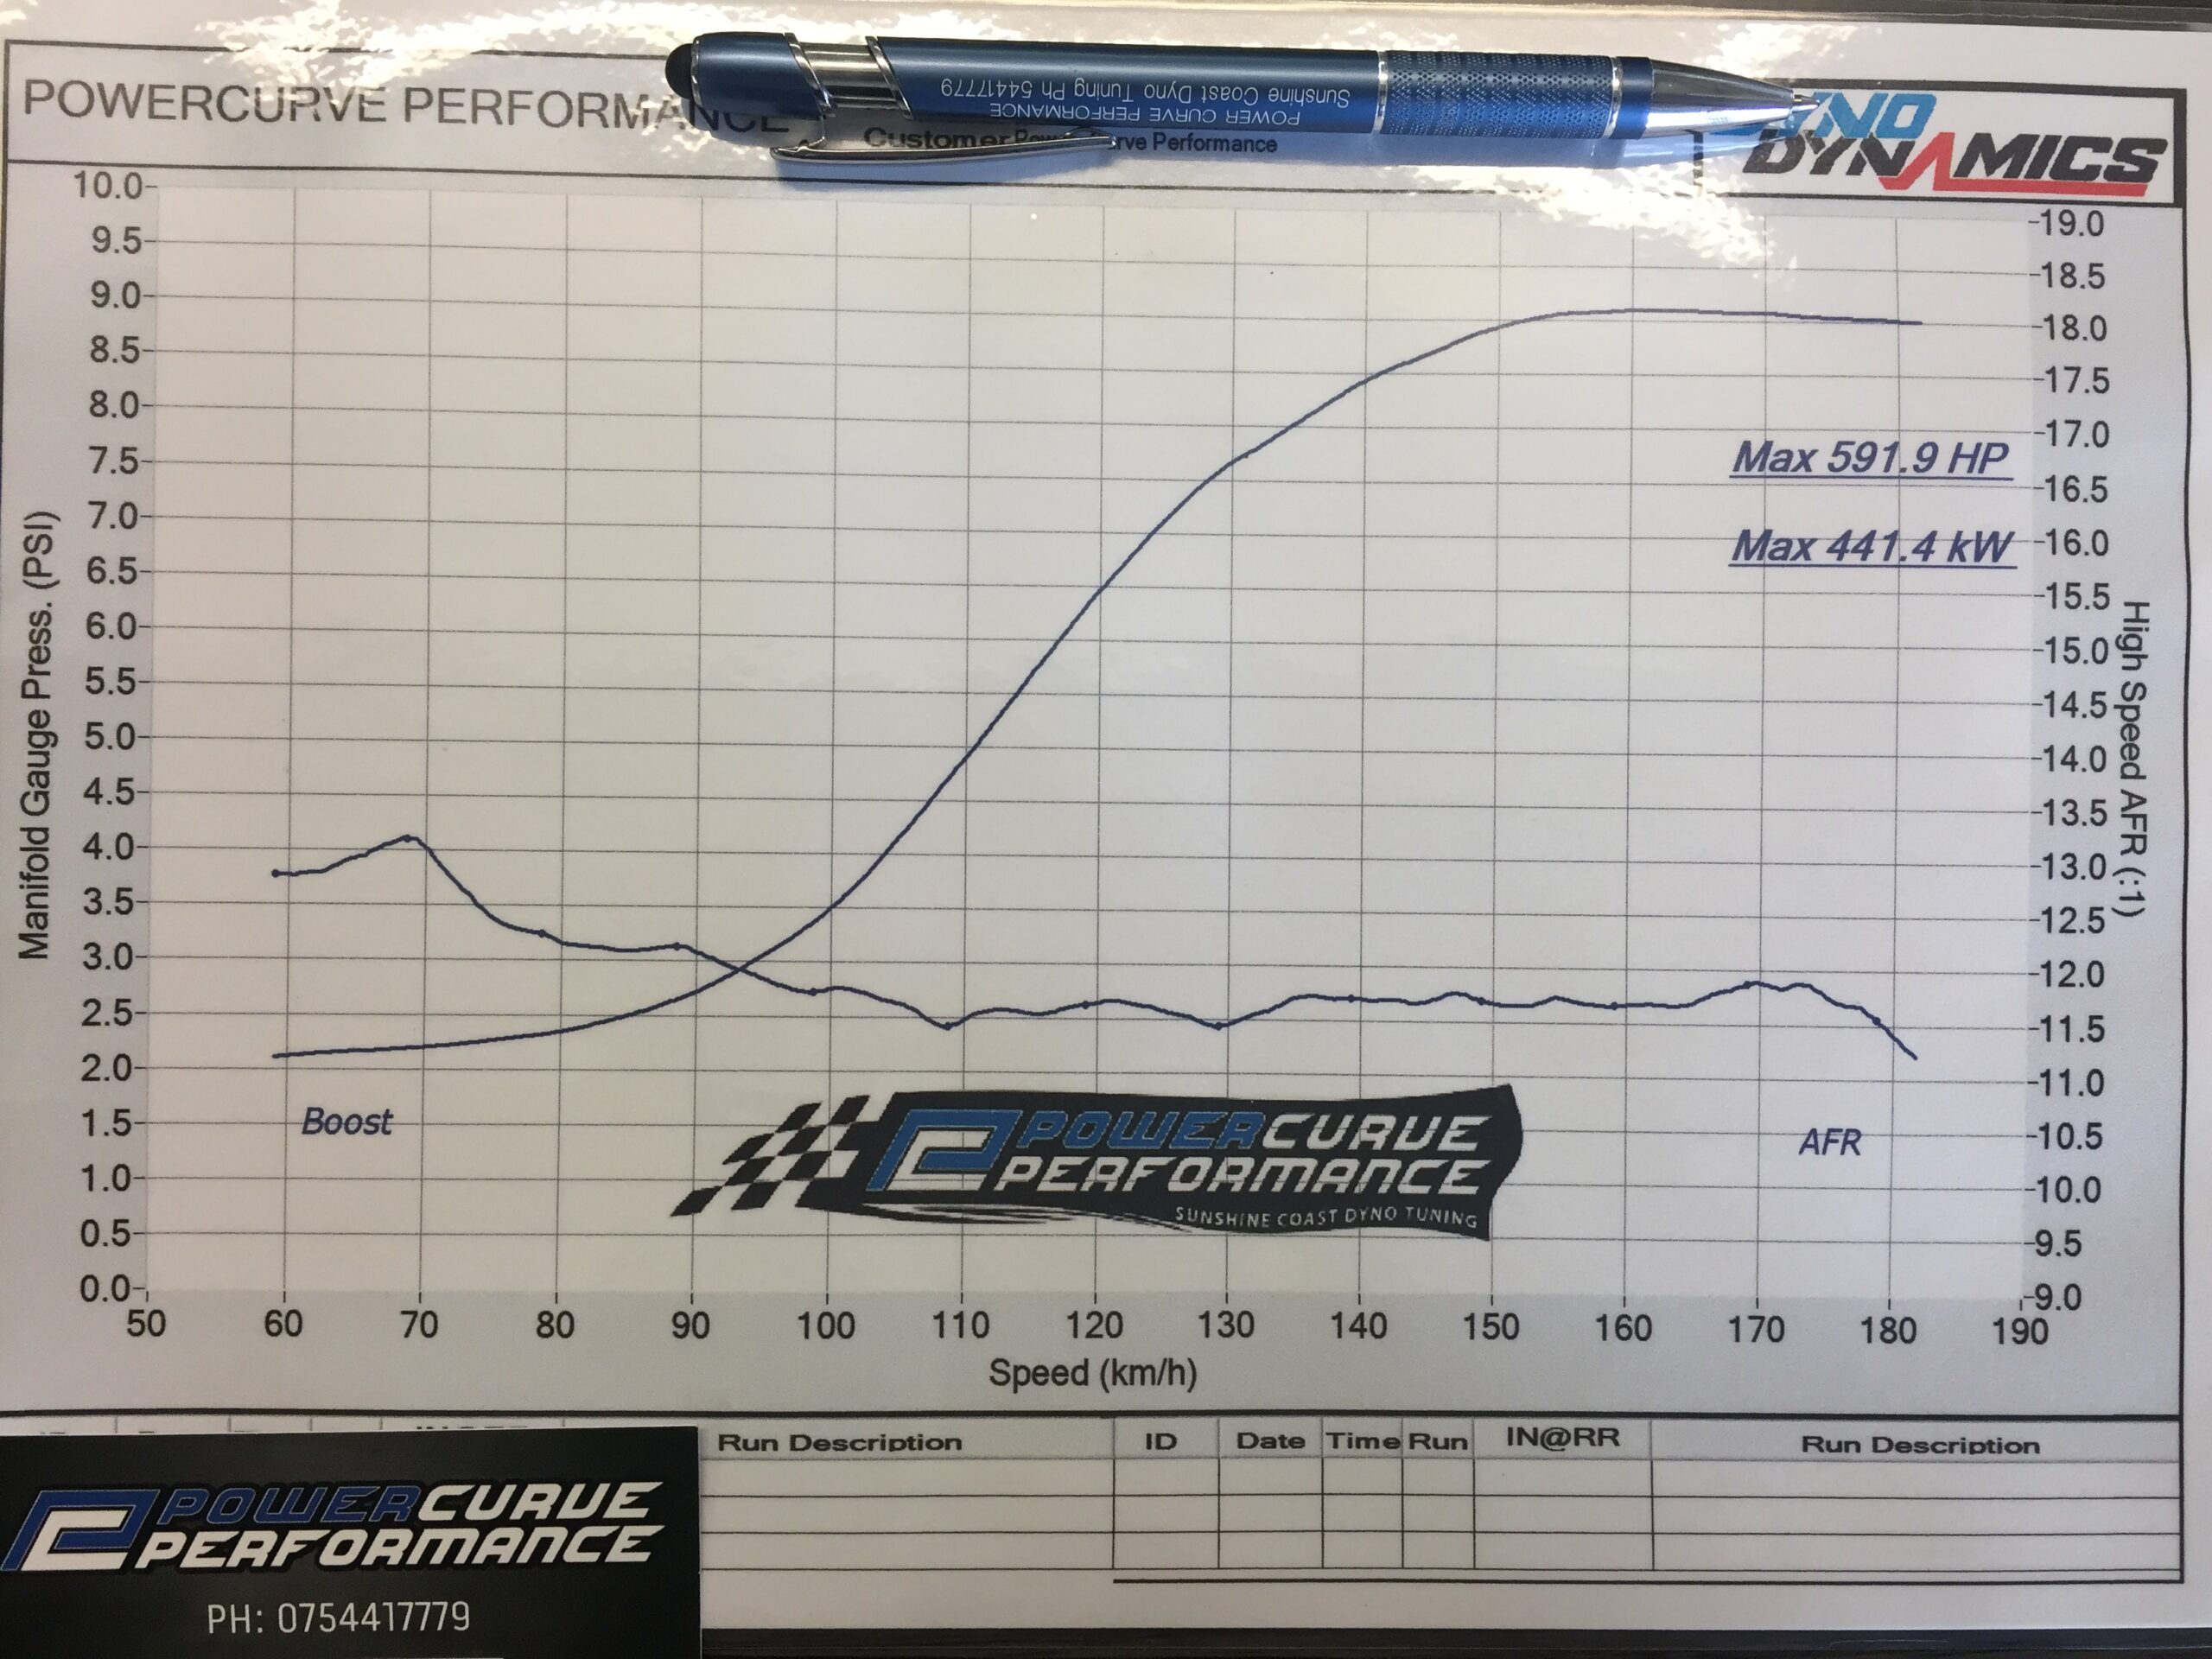 Turbo Charged Engine, Power Curve Perforamnce